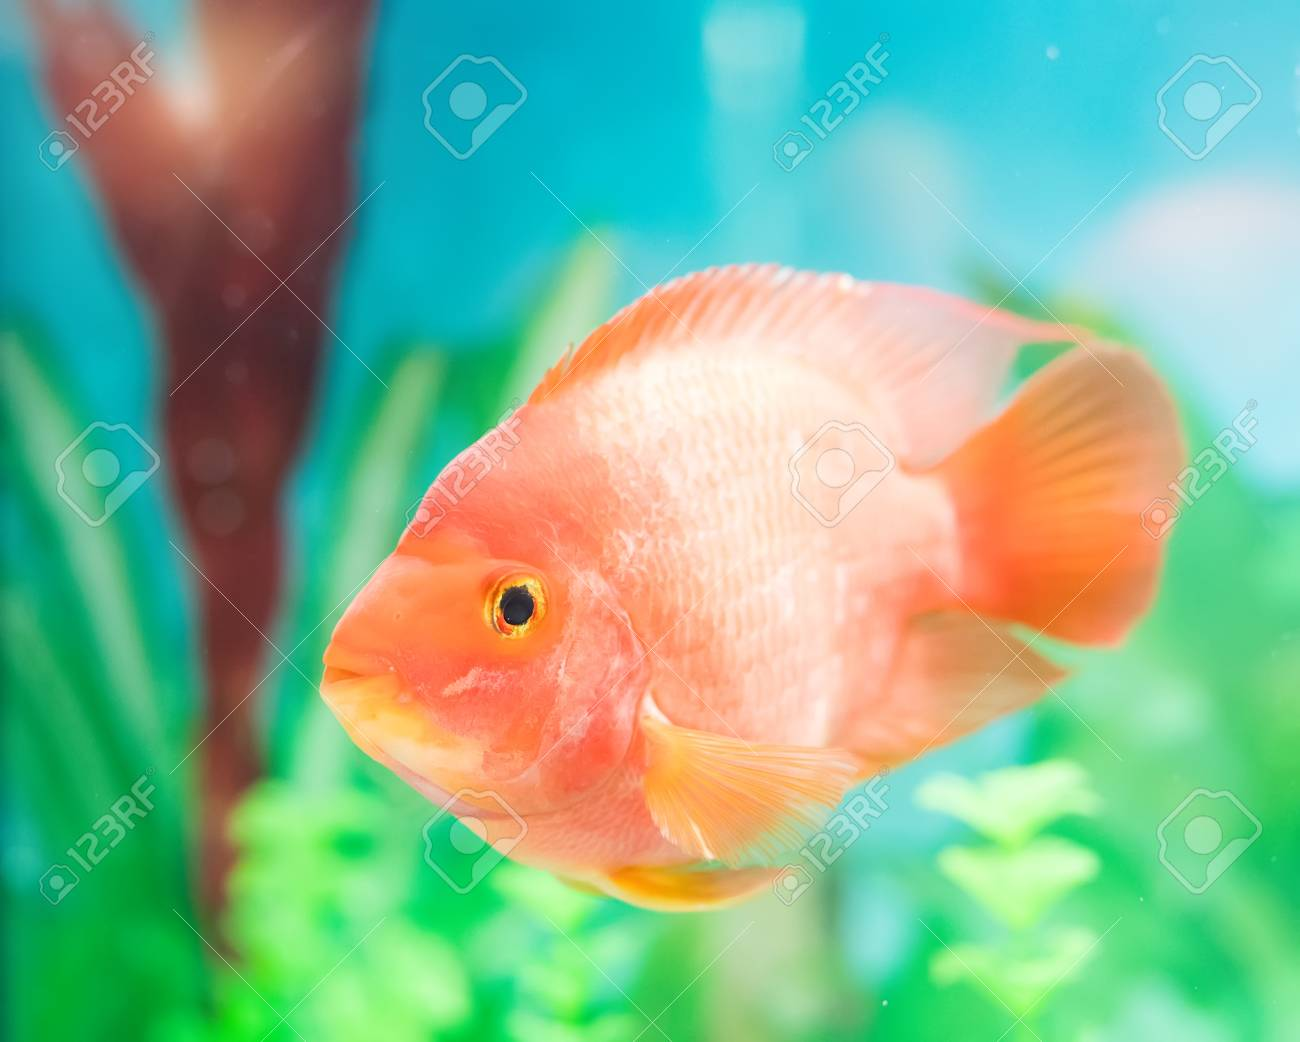 red parrot cichlid in aquarium plant green background stock photo